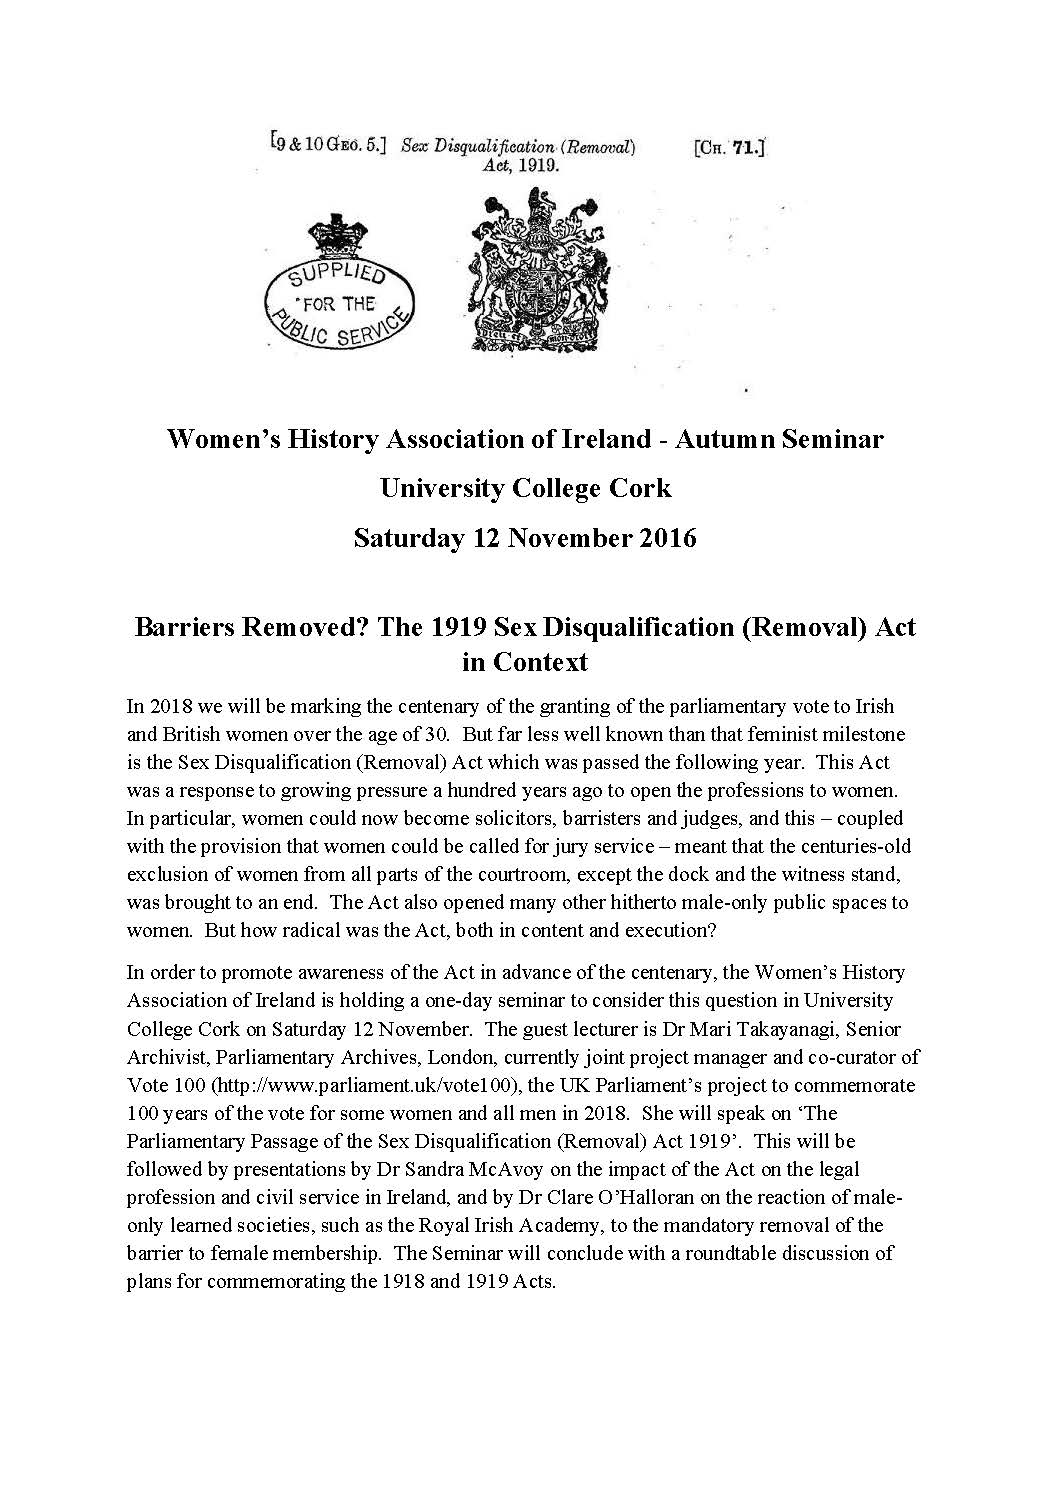 The 1919 Sex Disqualification (Removal) Act in Context, 12th November 2016.  whai_autumn_seminar-2016-ucc_page_1 ...